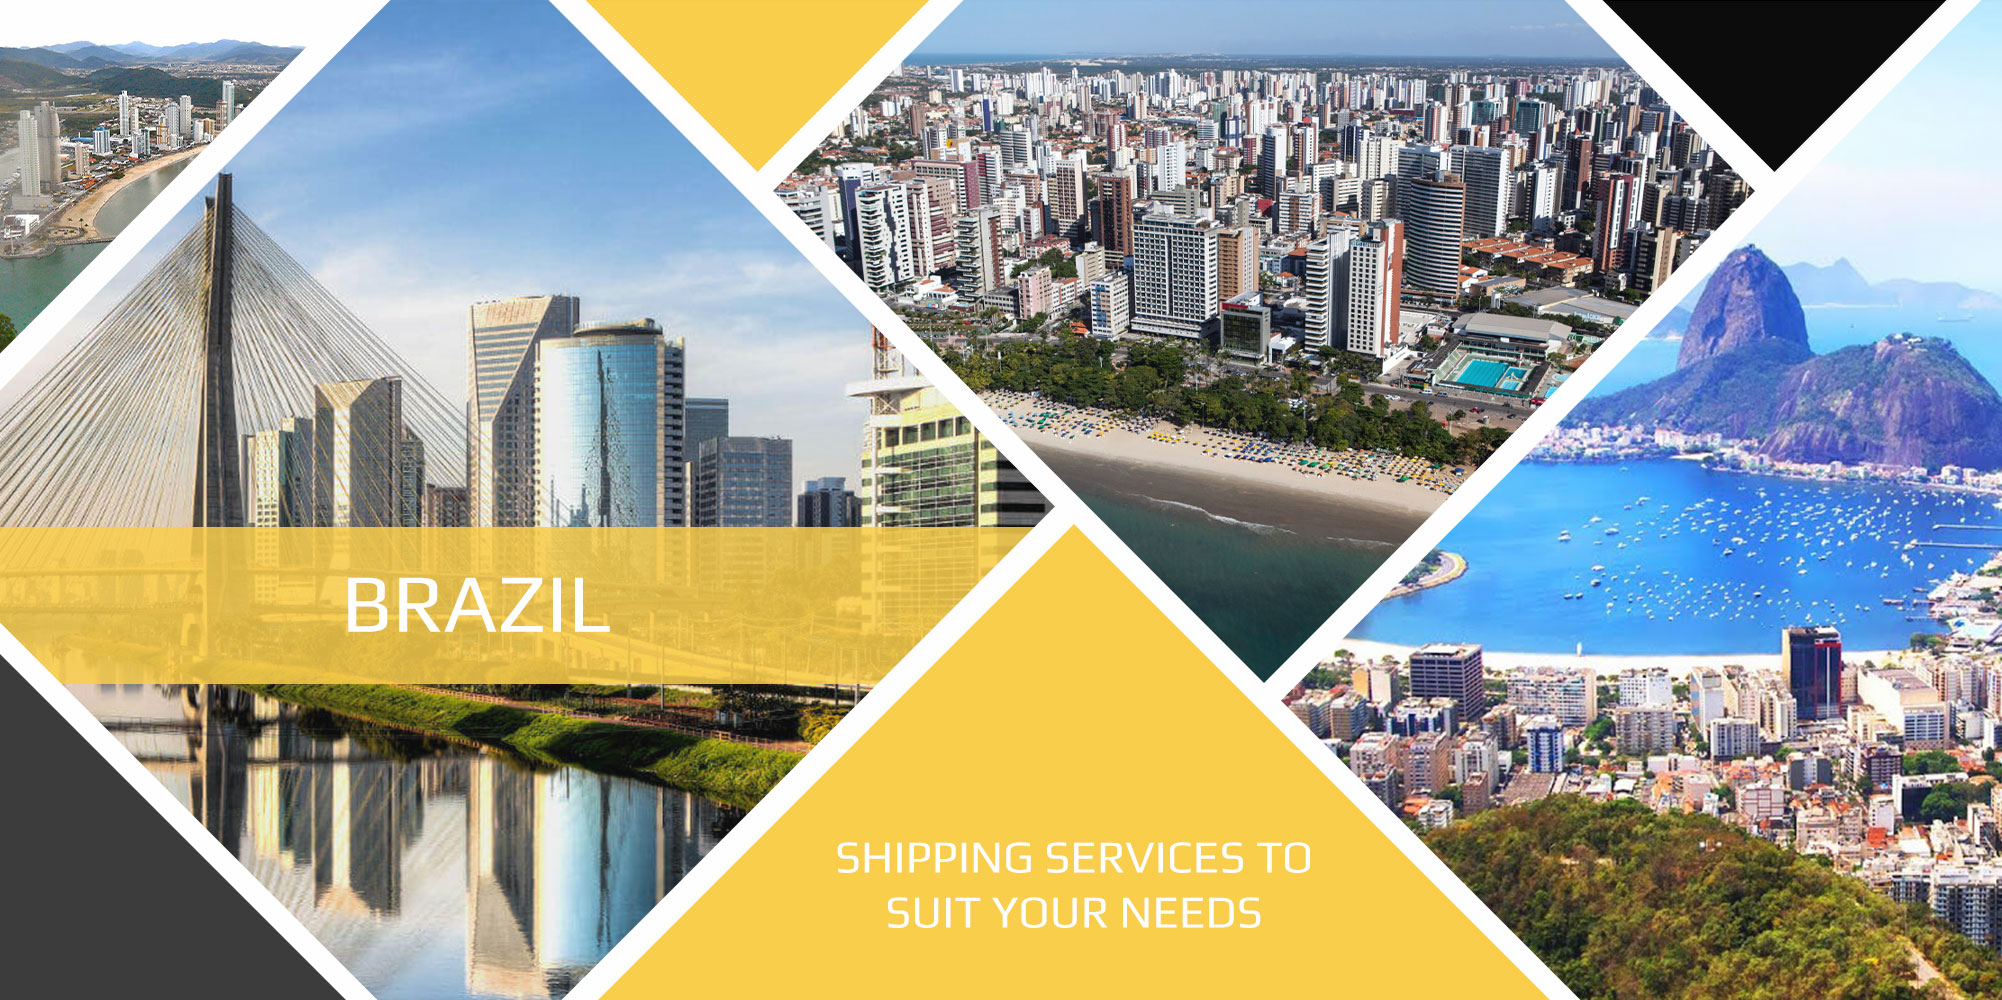 Shipping to Brazil country banner